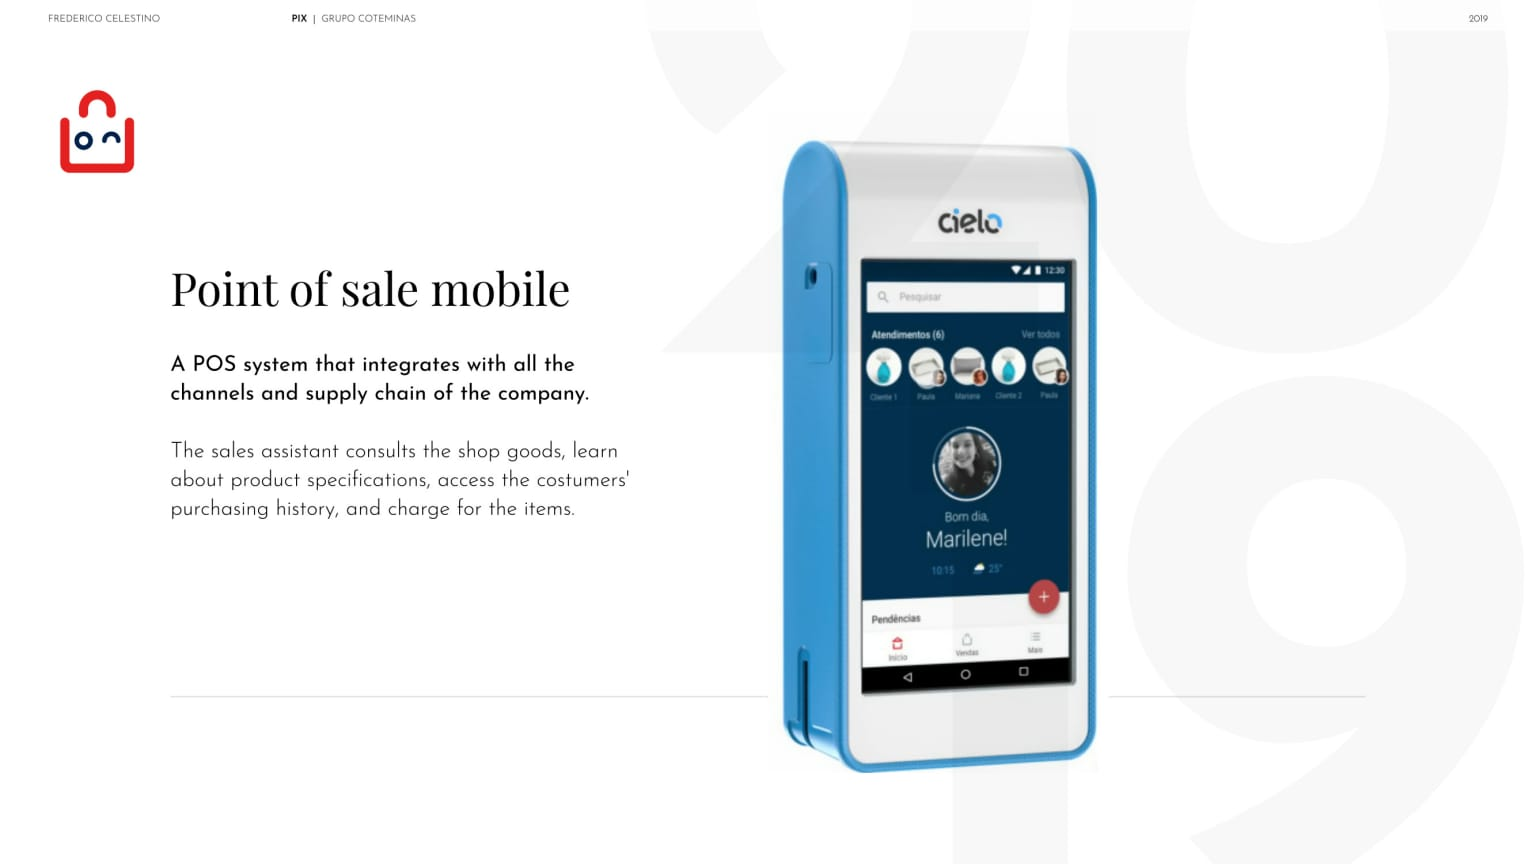 Point of sale mobile